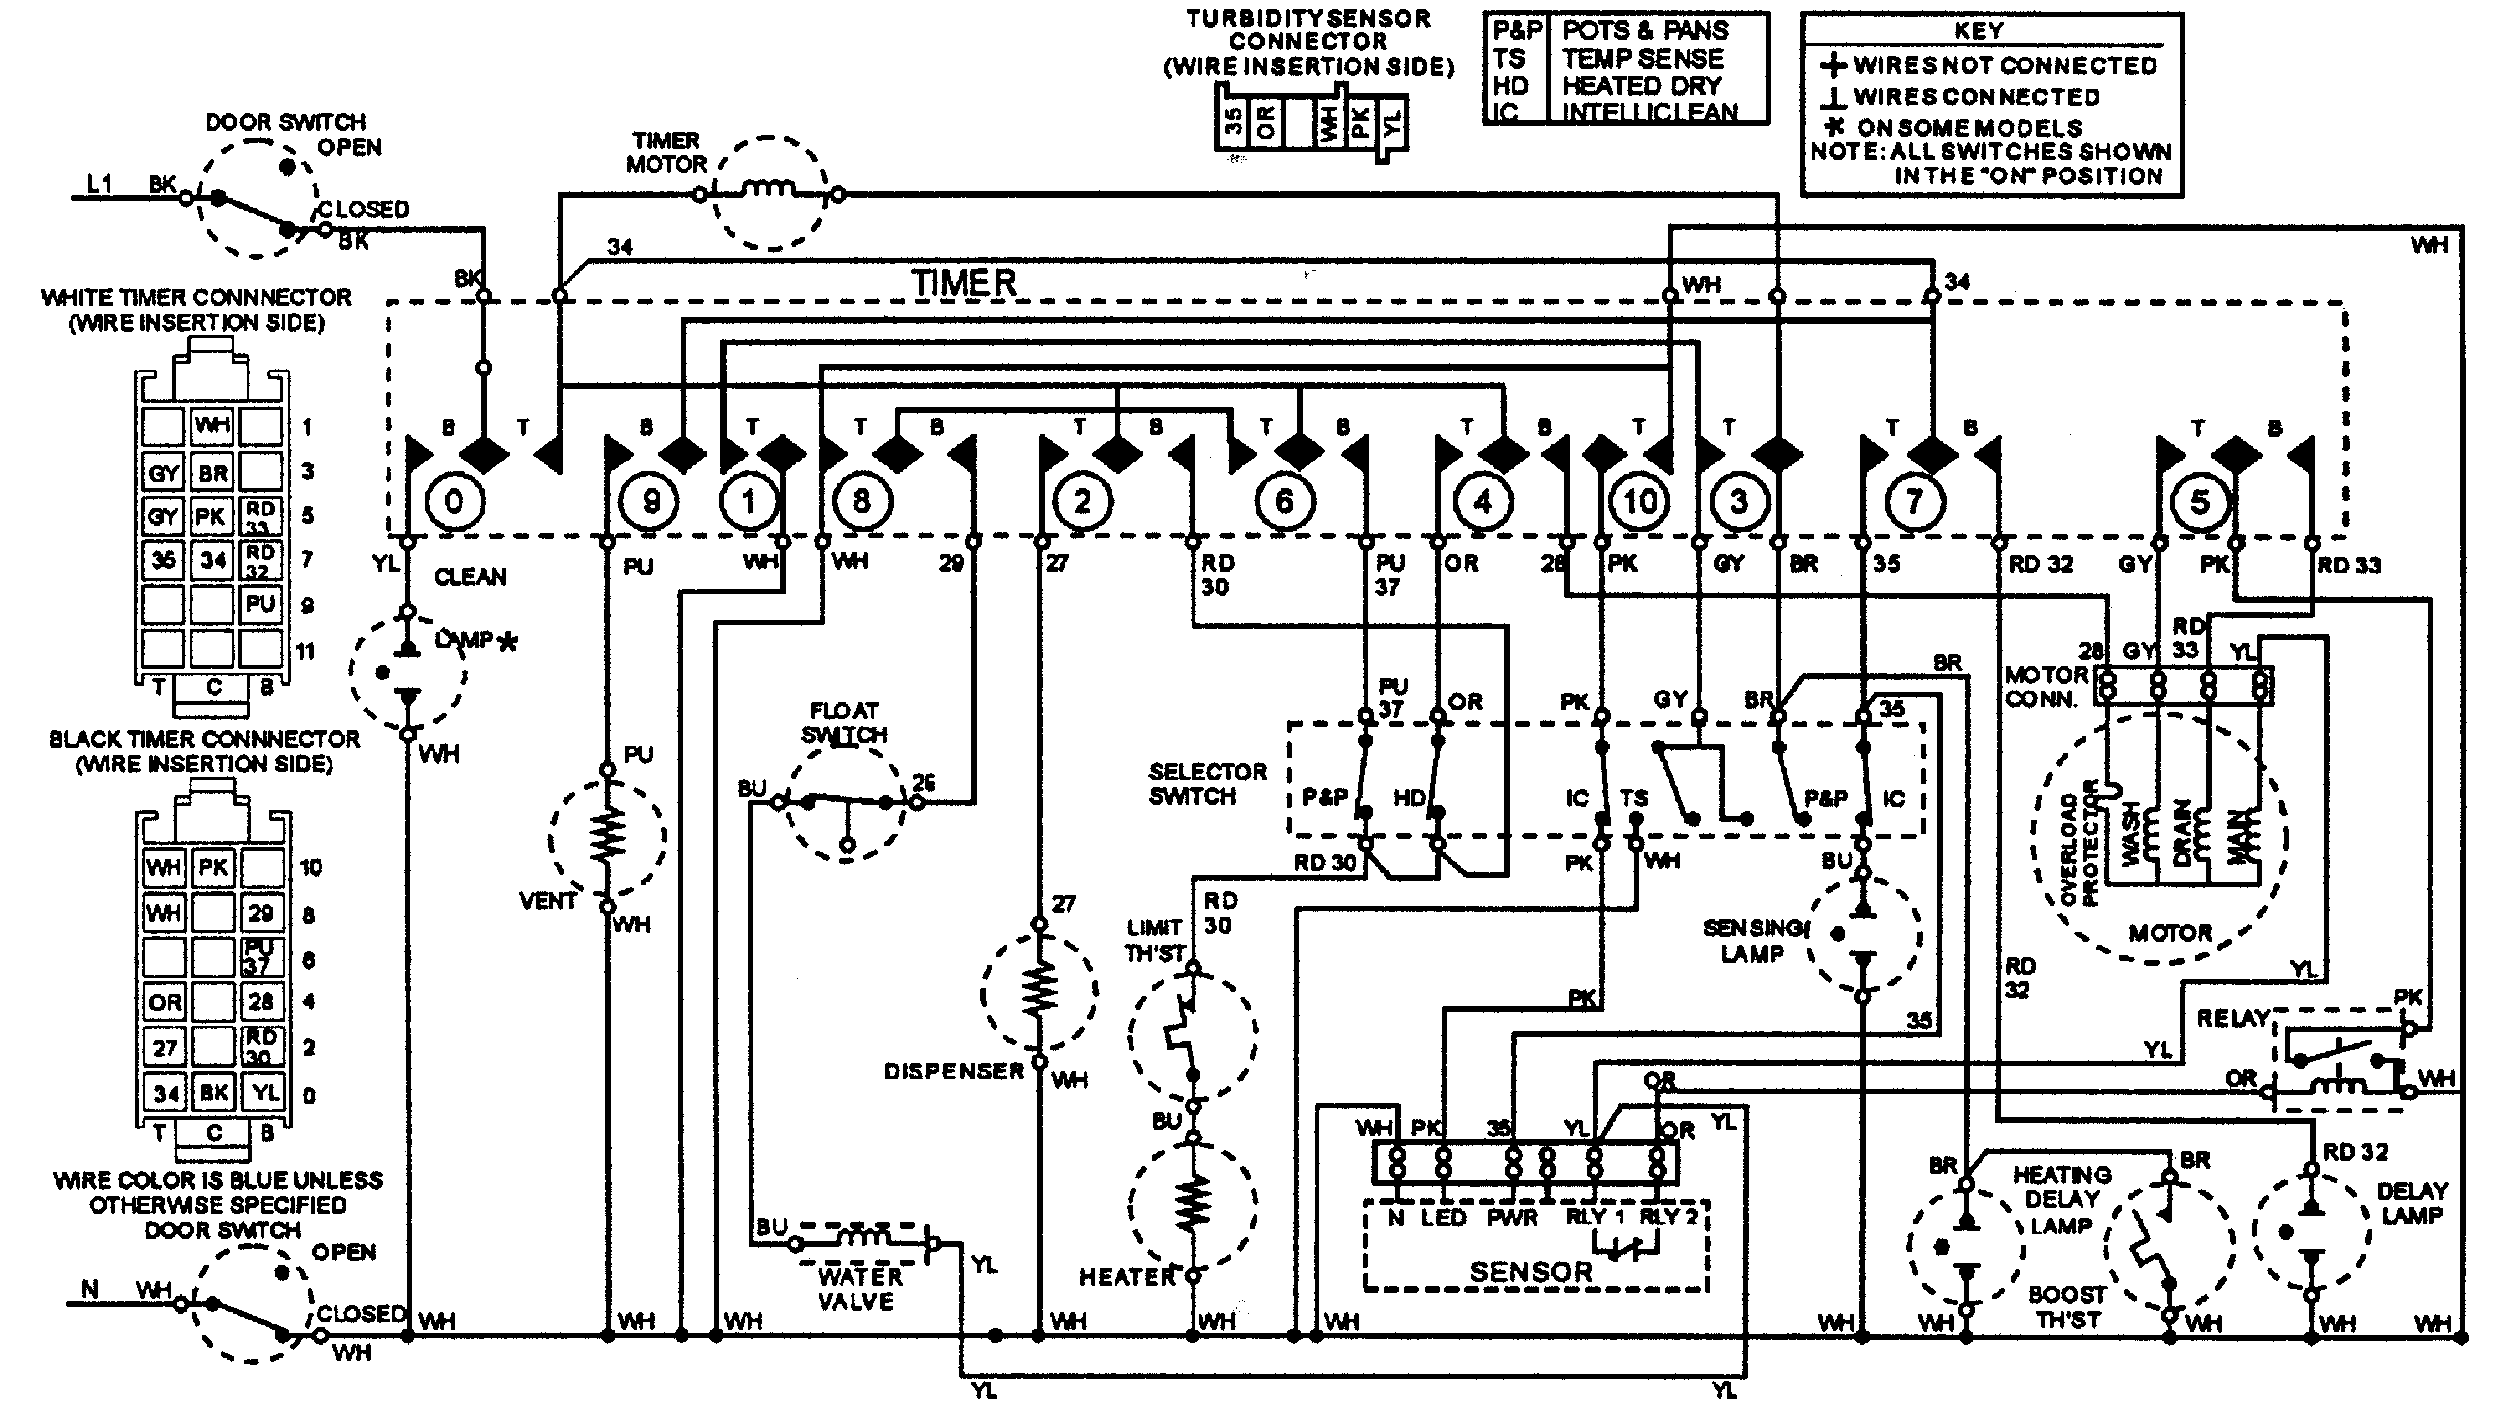 Whirlpool Appliances Wiring Diagram | Wiring Liry on